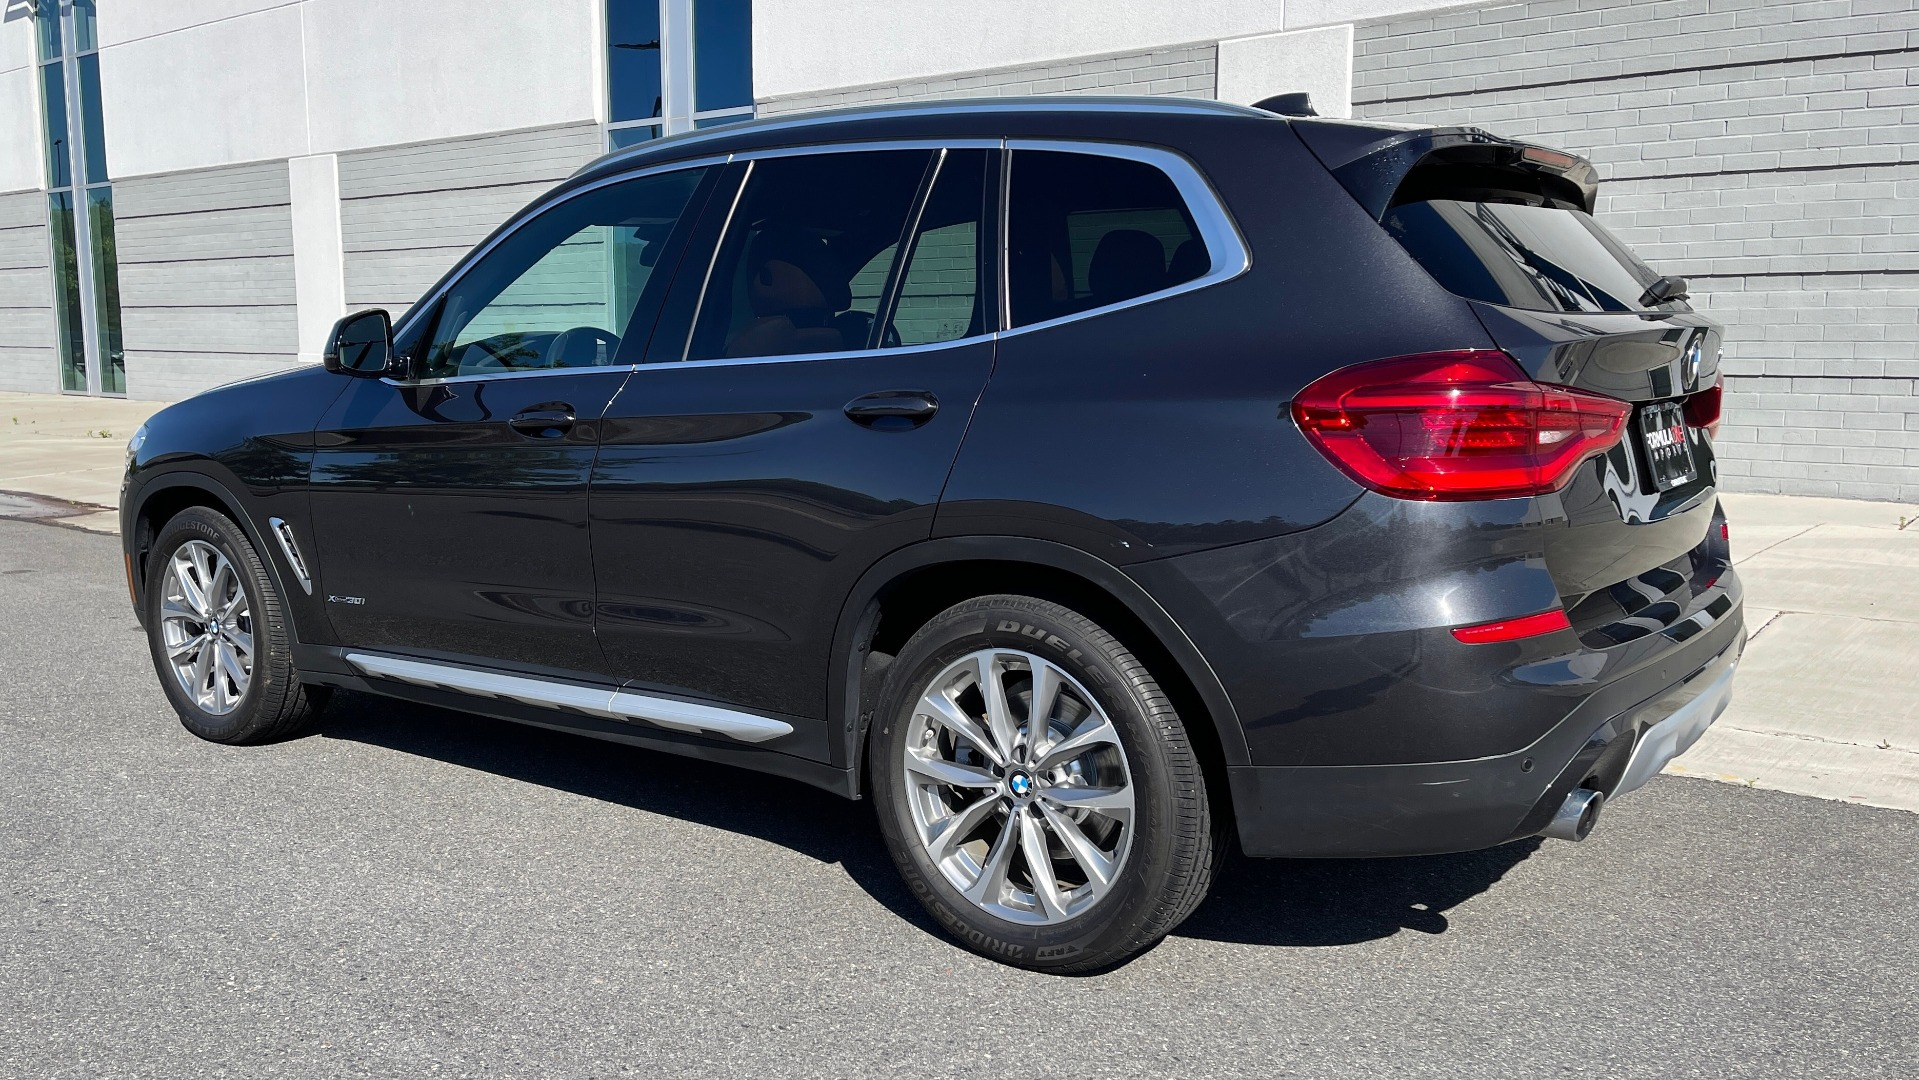 Used 2018 BMW X3 XDRIVE30I PREMIUM / NAV / DRVR ASST PLUS / CONV PKG / SUNROOF / REARVIEW for sale $33,795 at Formula Imports in Charlotte NC 28227 5